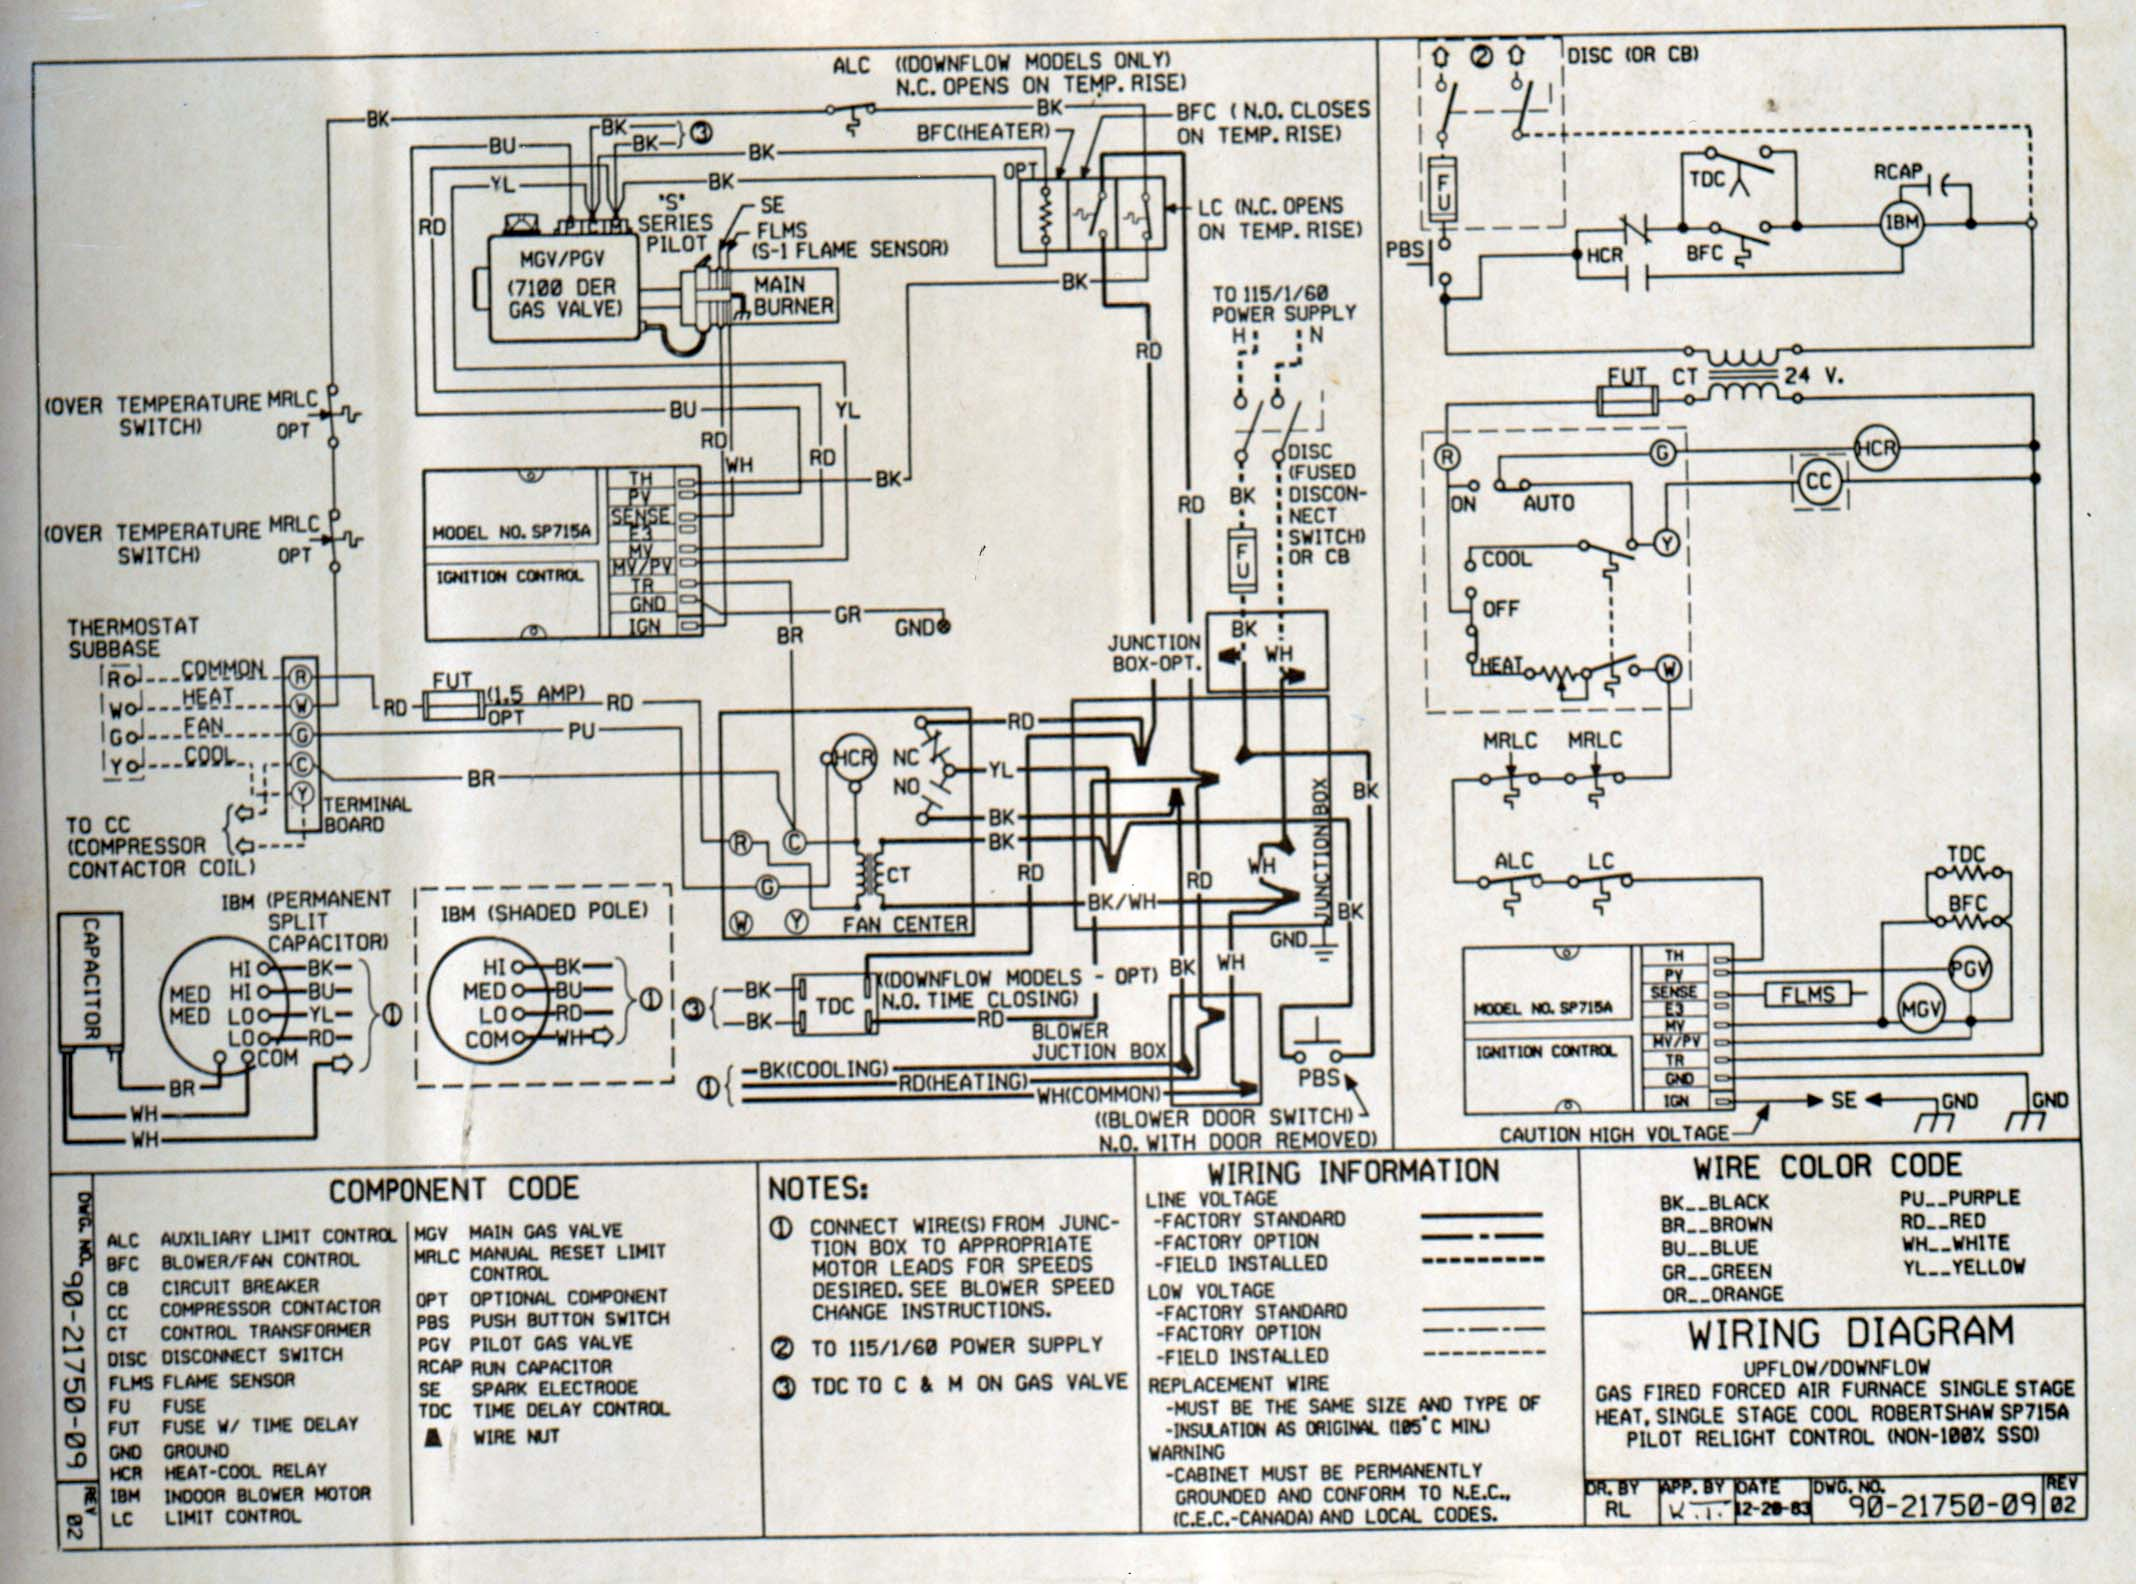 old carrier package unit wiring diagram furnace fan won't stop running after the heating cycle is done oil package unit wiring diagram